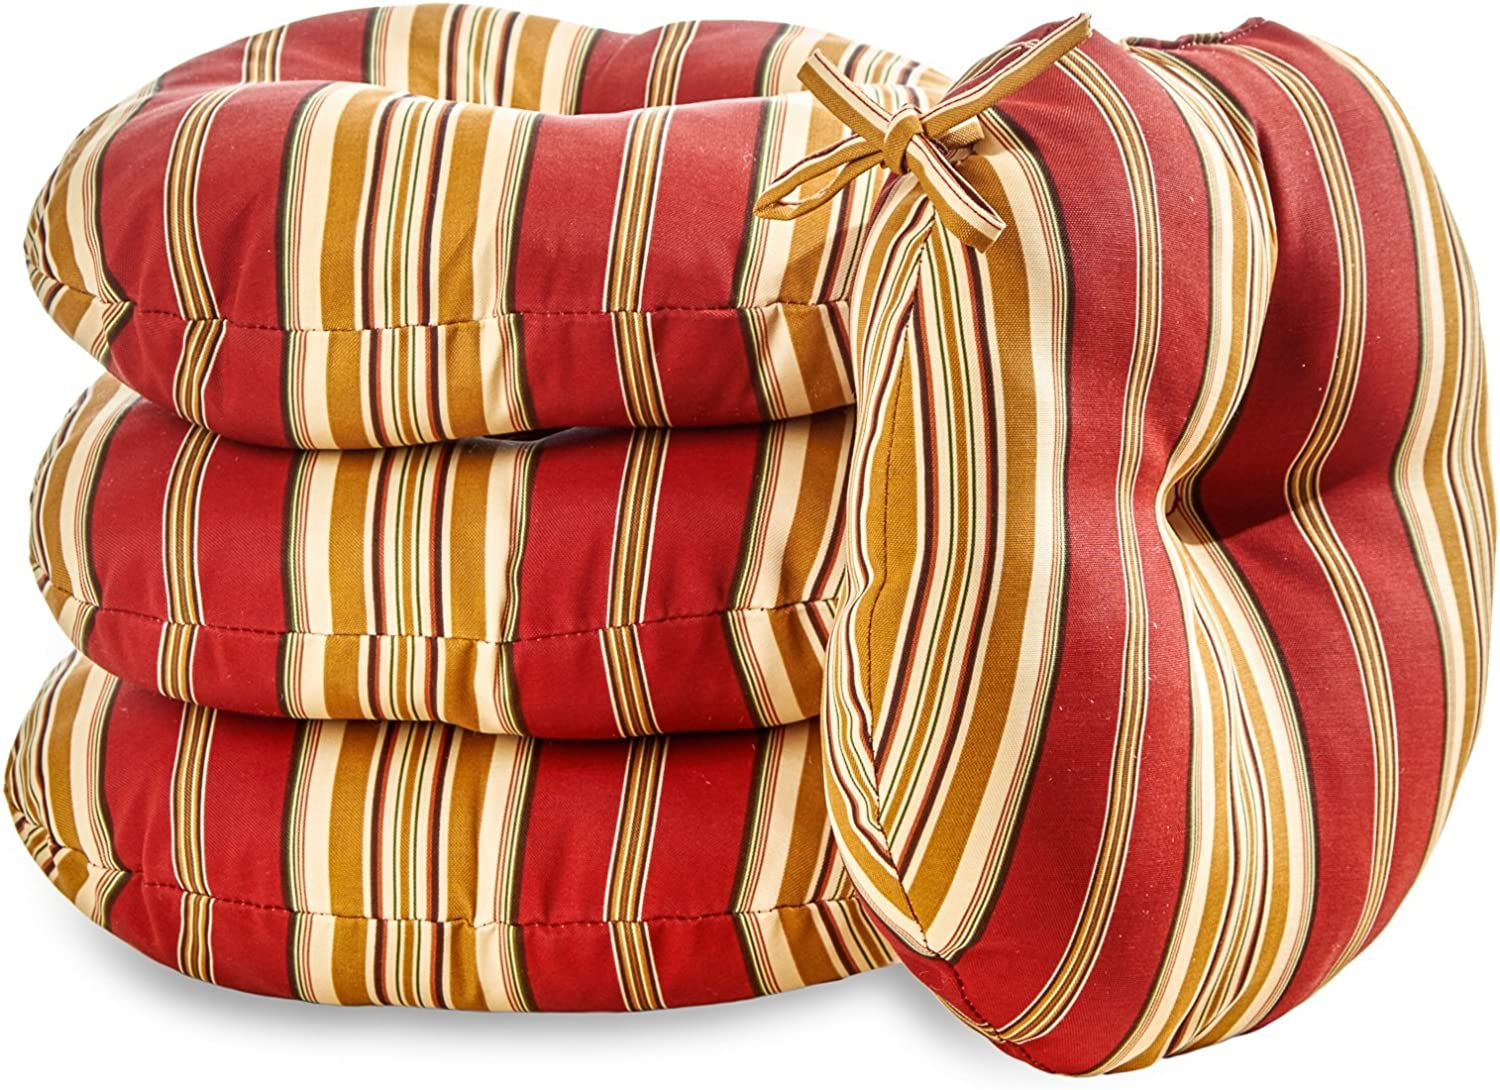 Greendale Home Fashions 18 in. Round Outdoor Bistro Chair Cushion set of 4 , Roma Stripe